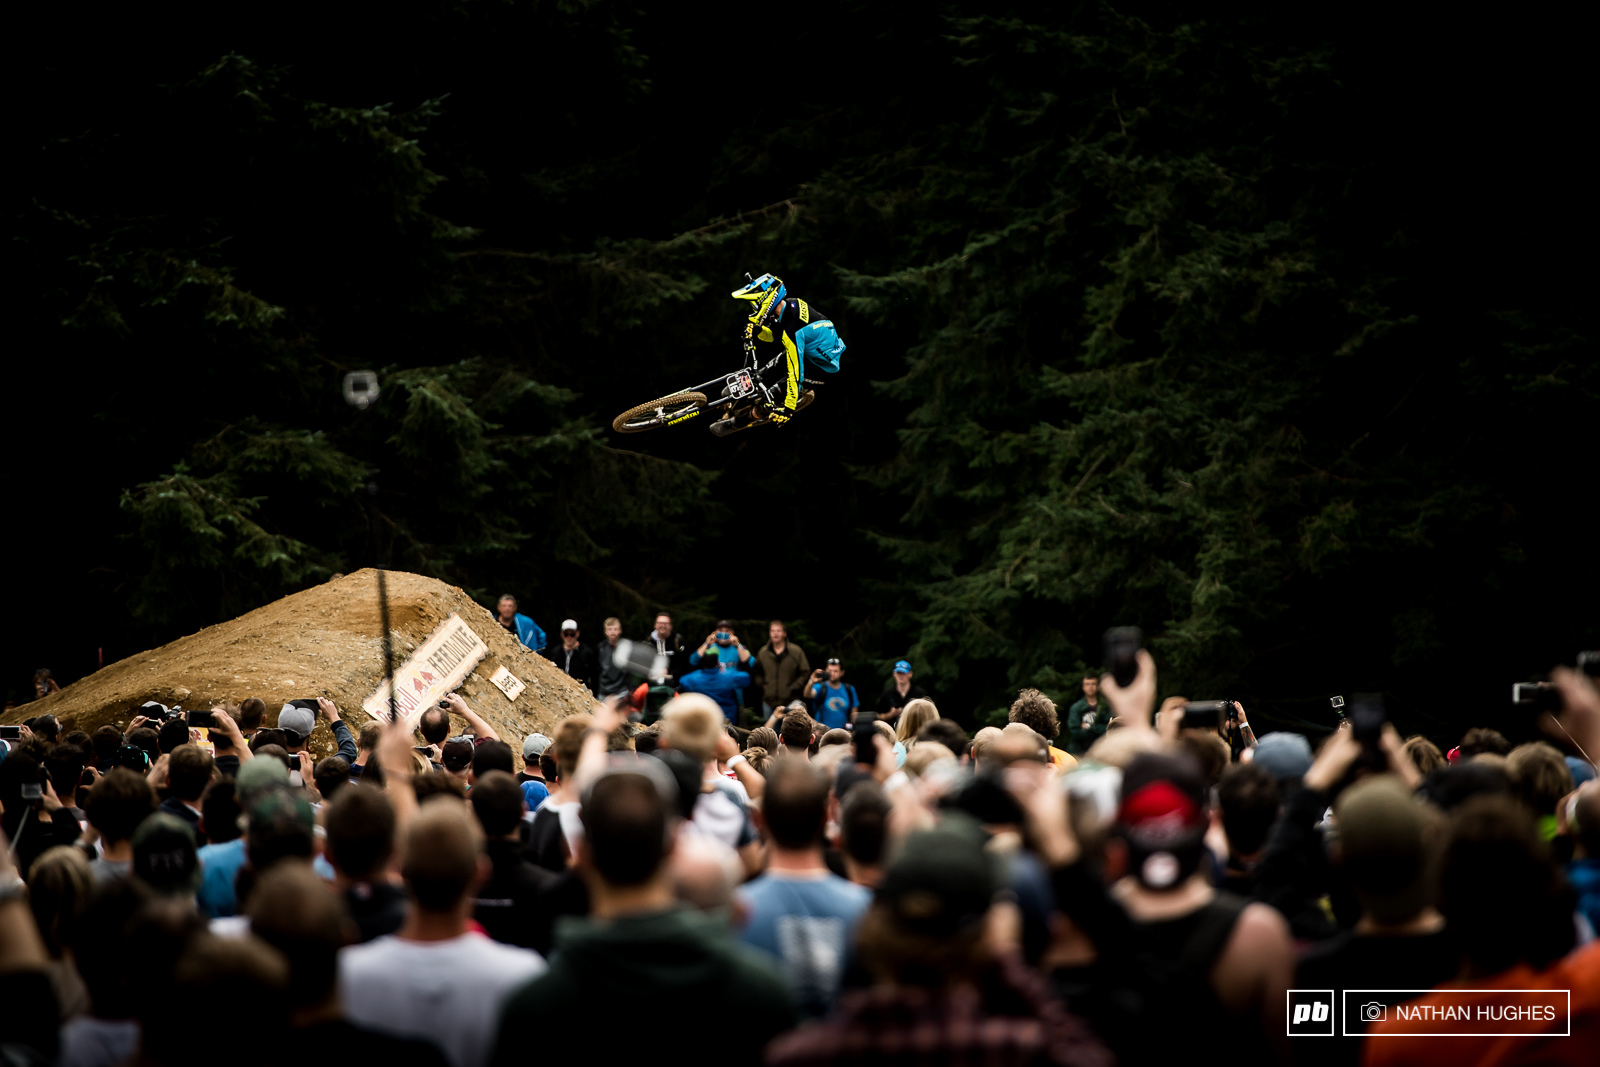 Eddy Masters getting sideways for the people...